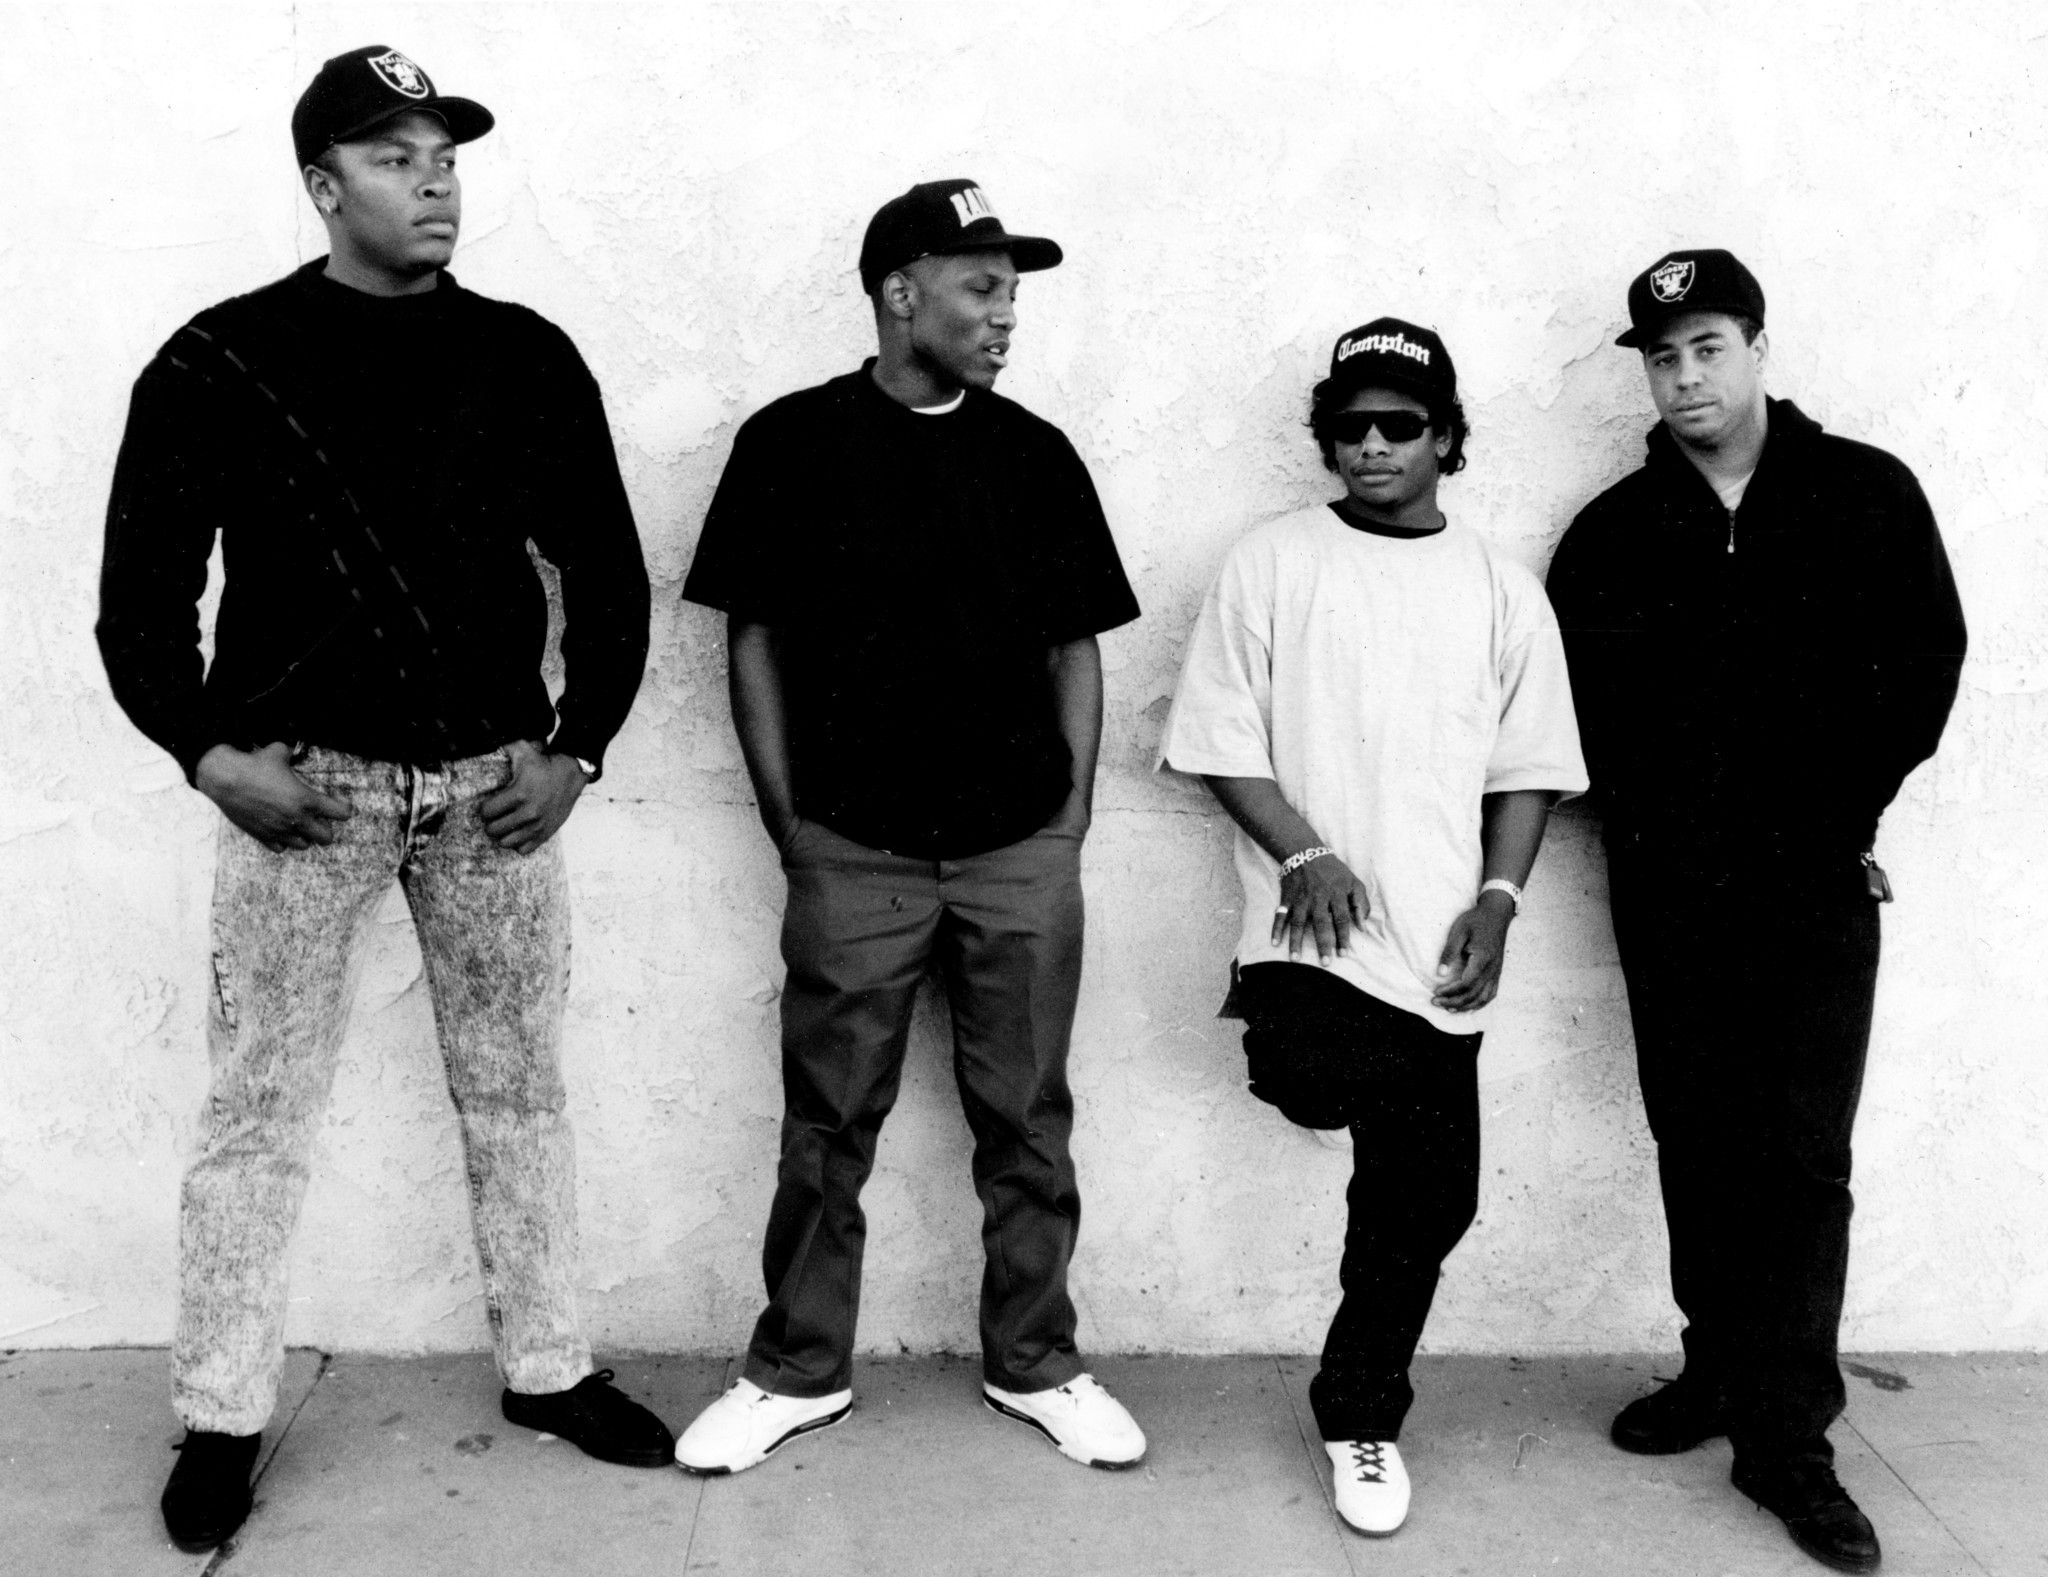 From left, N.W.A.'s Eazy-E, DJ Yella, Dr. Dre, and M.C. Ren. Jan. 26, 1990. (Tony Barnard / Los Angeles